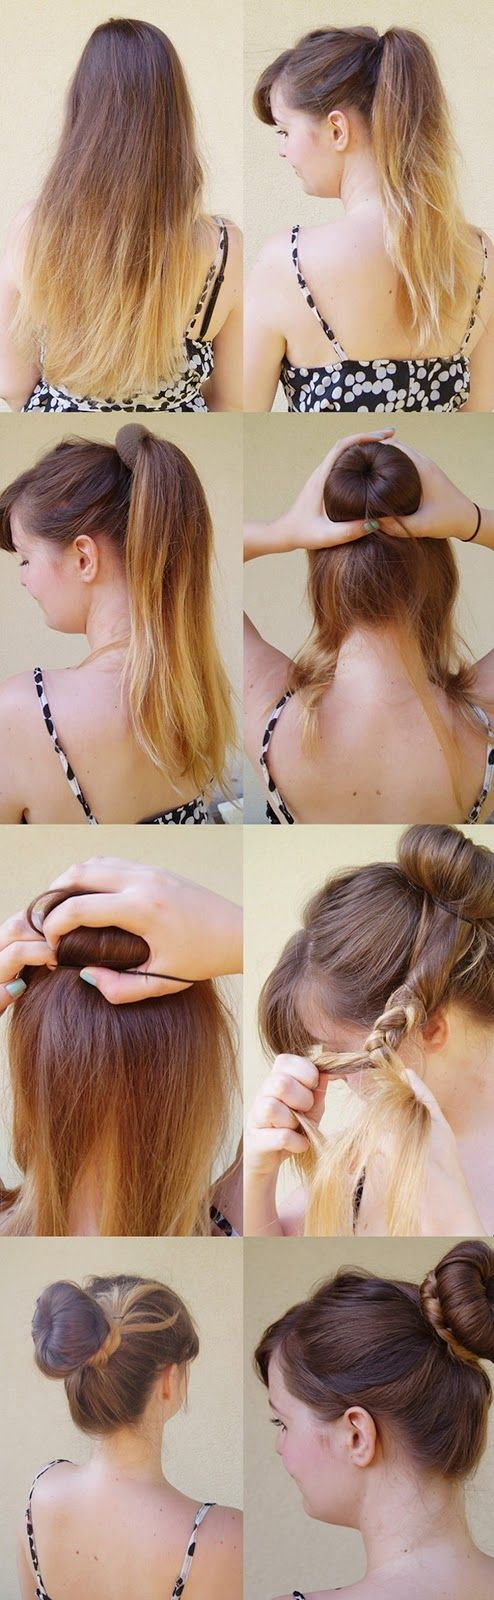 Nothinu fancy really easy hairstyle tutorial the braided donut